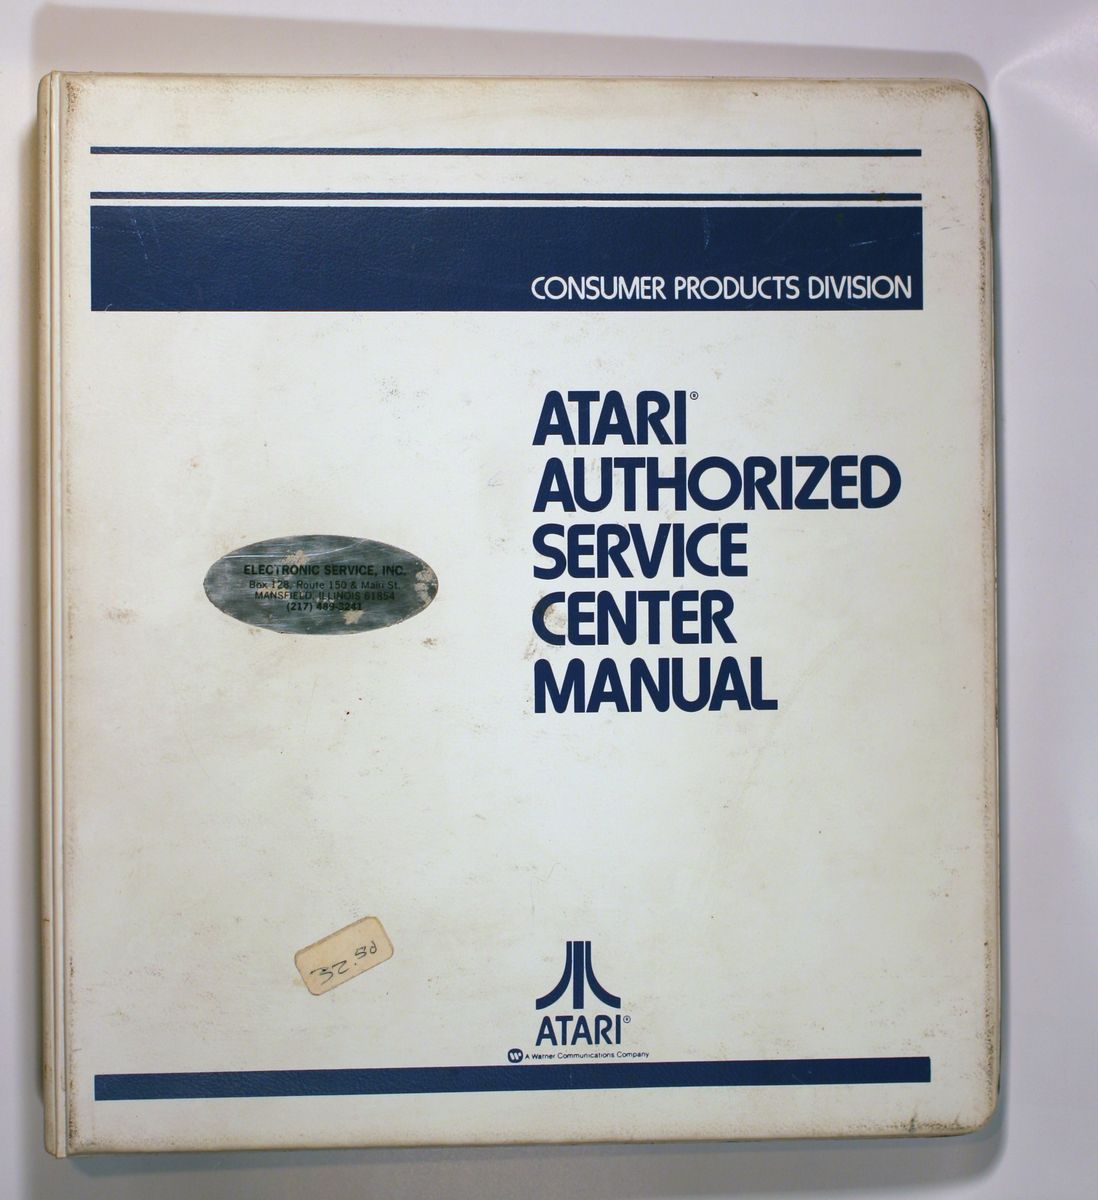 Spotted on eBay: Atari Service Manuals, Pirate Gear & More – Video